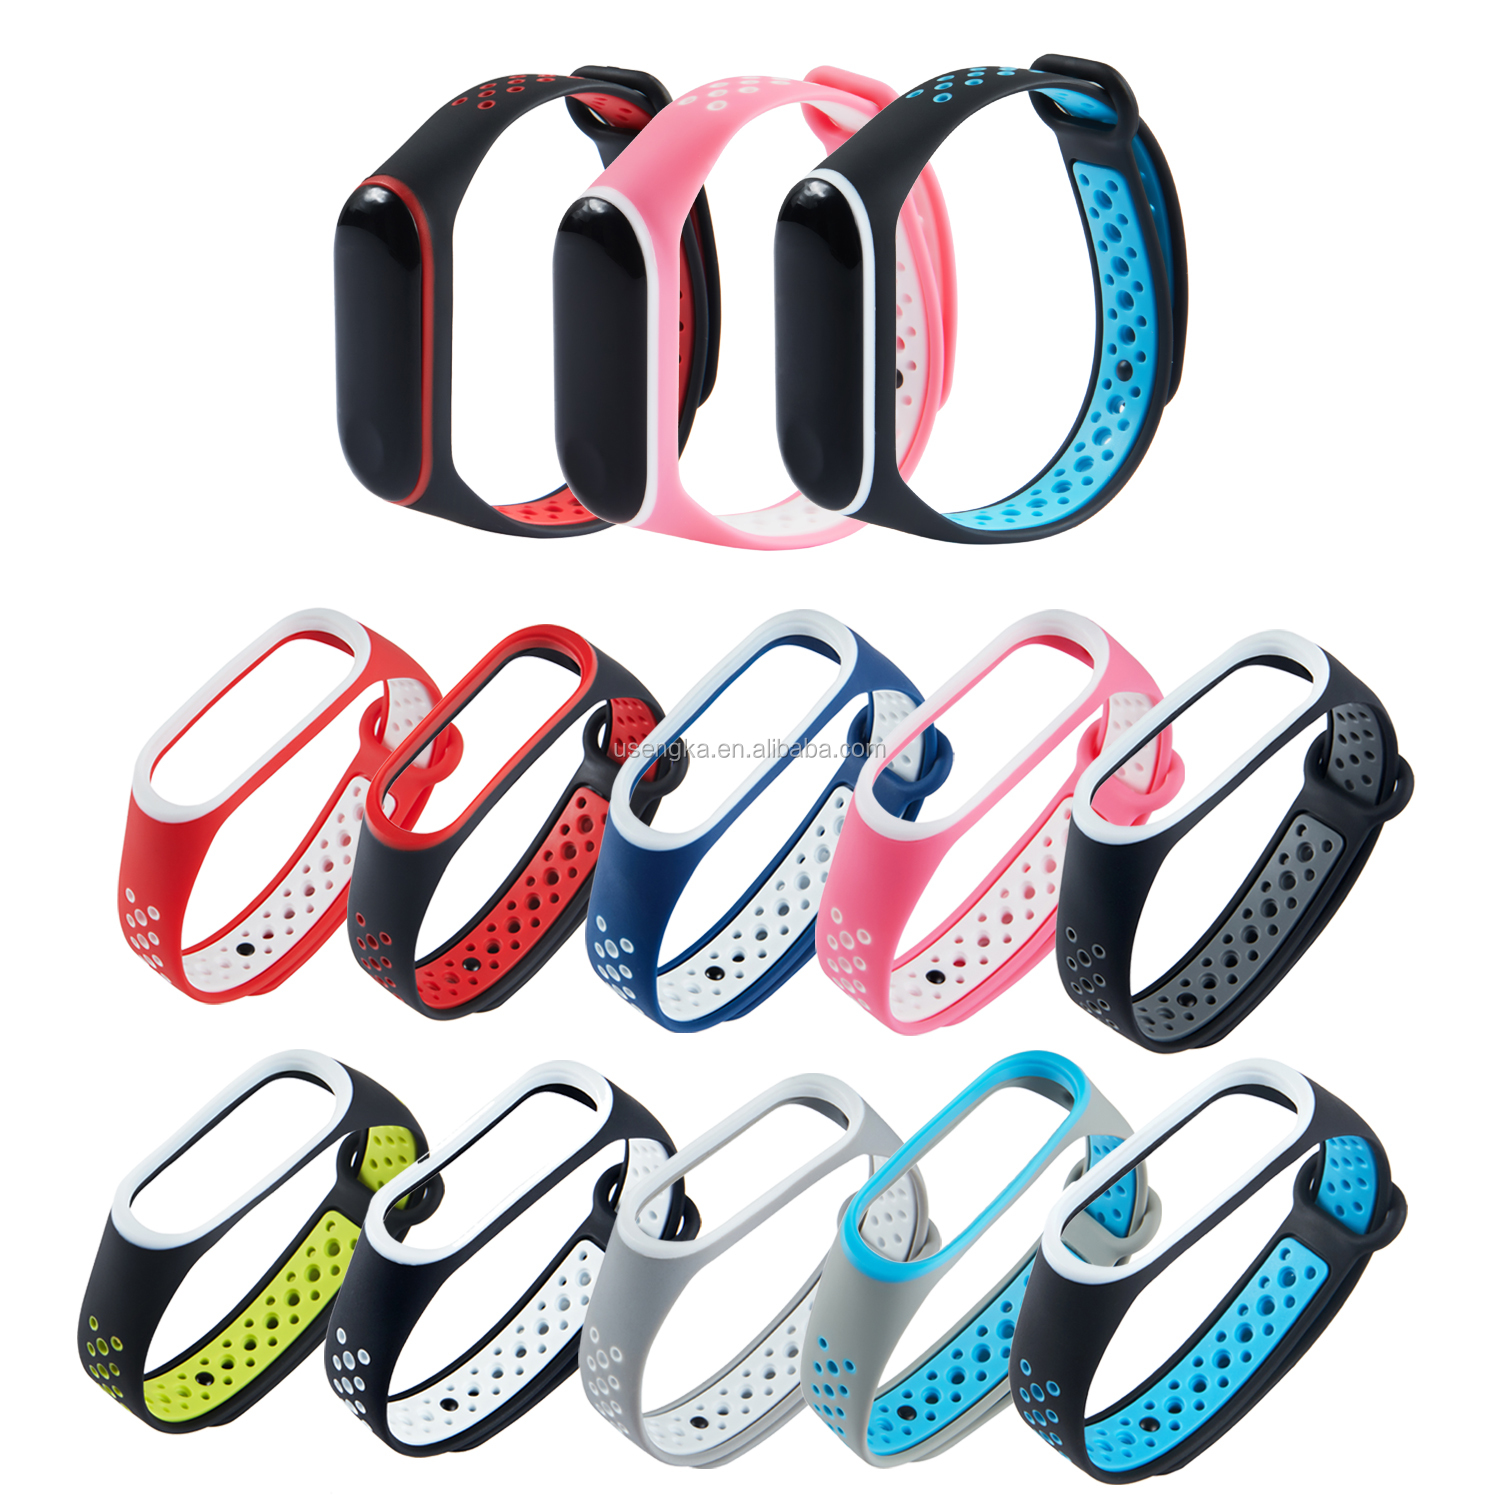 Young Fashion Mixed Colorful Silicone mi3 mi4 Silicone Watch Bands for xiaomi  MI Band 3 4 Strap Accessories